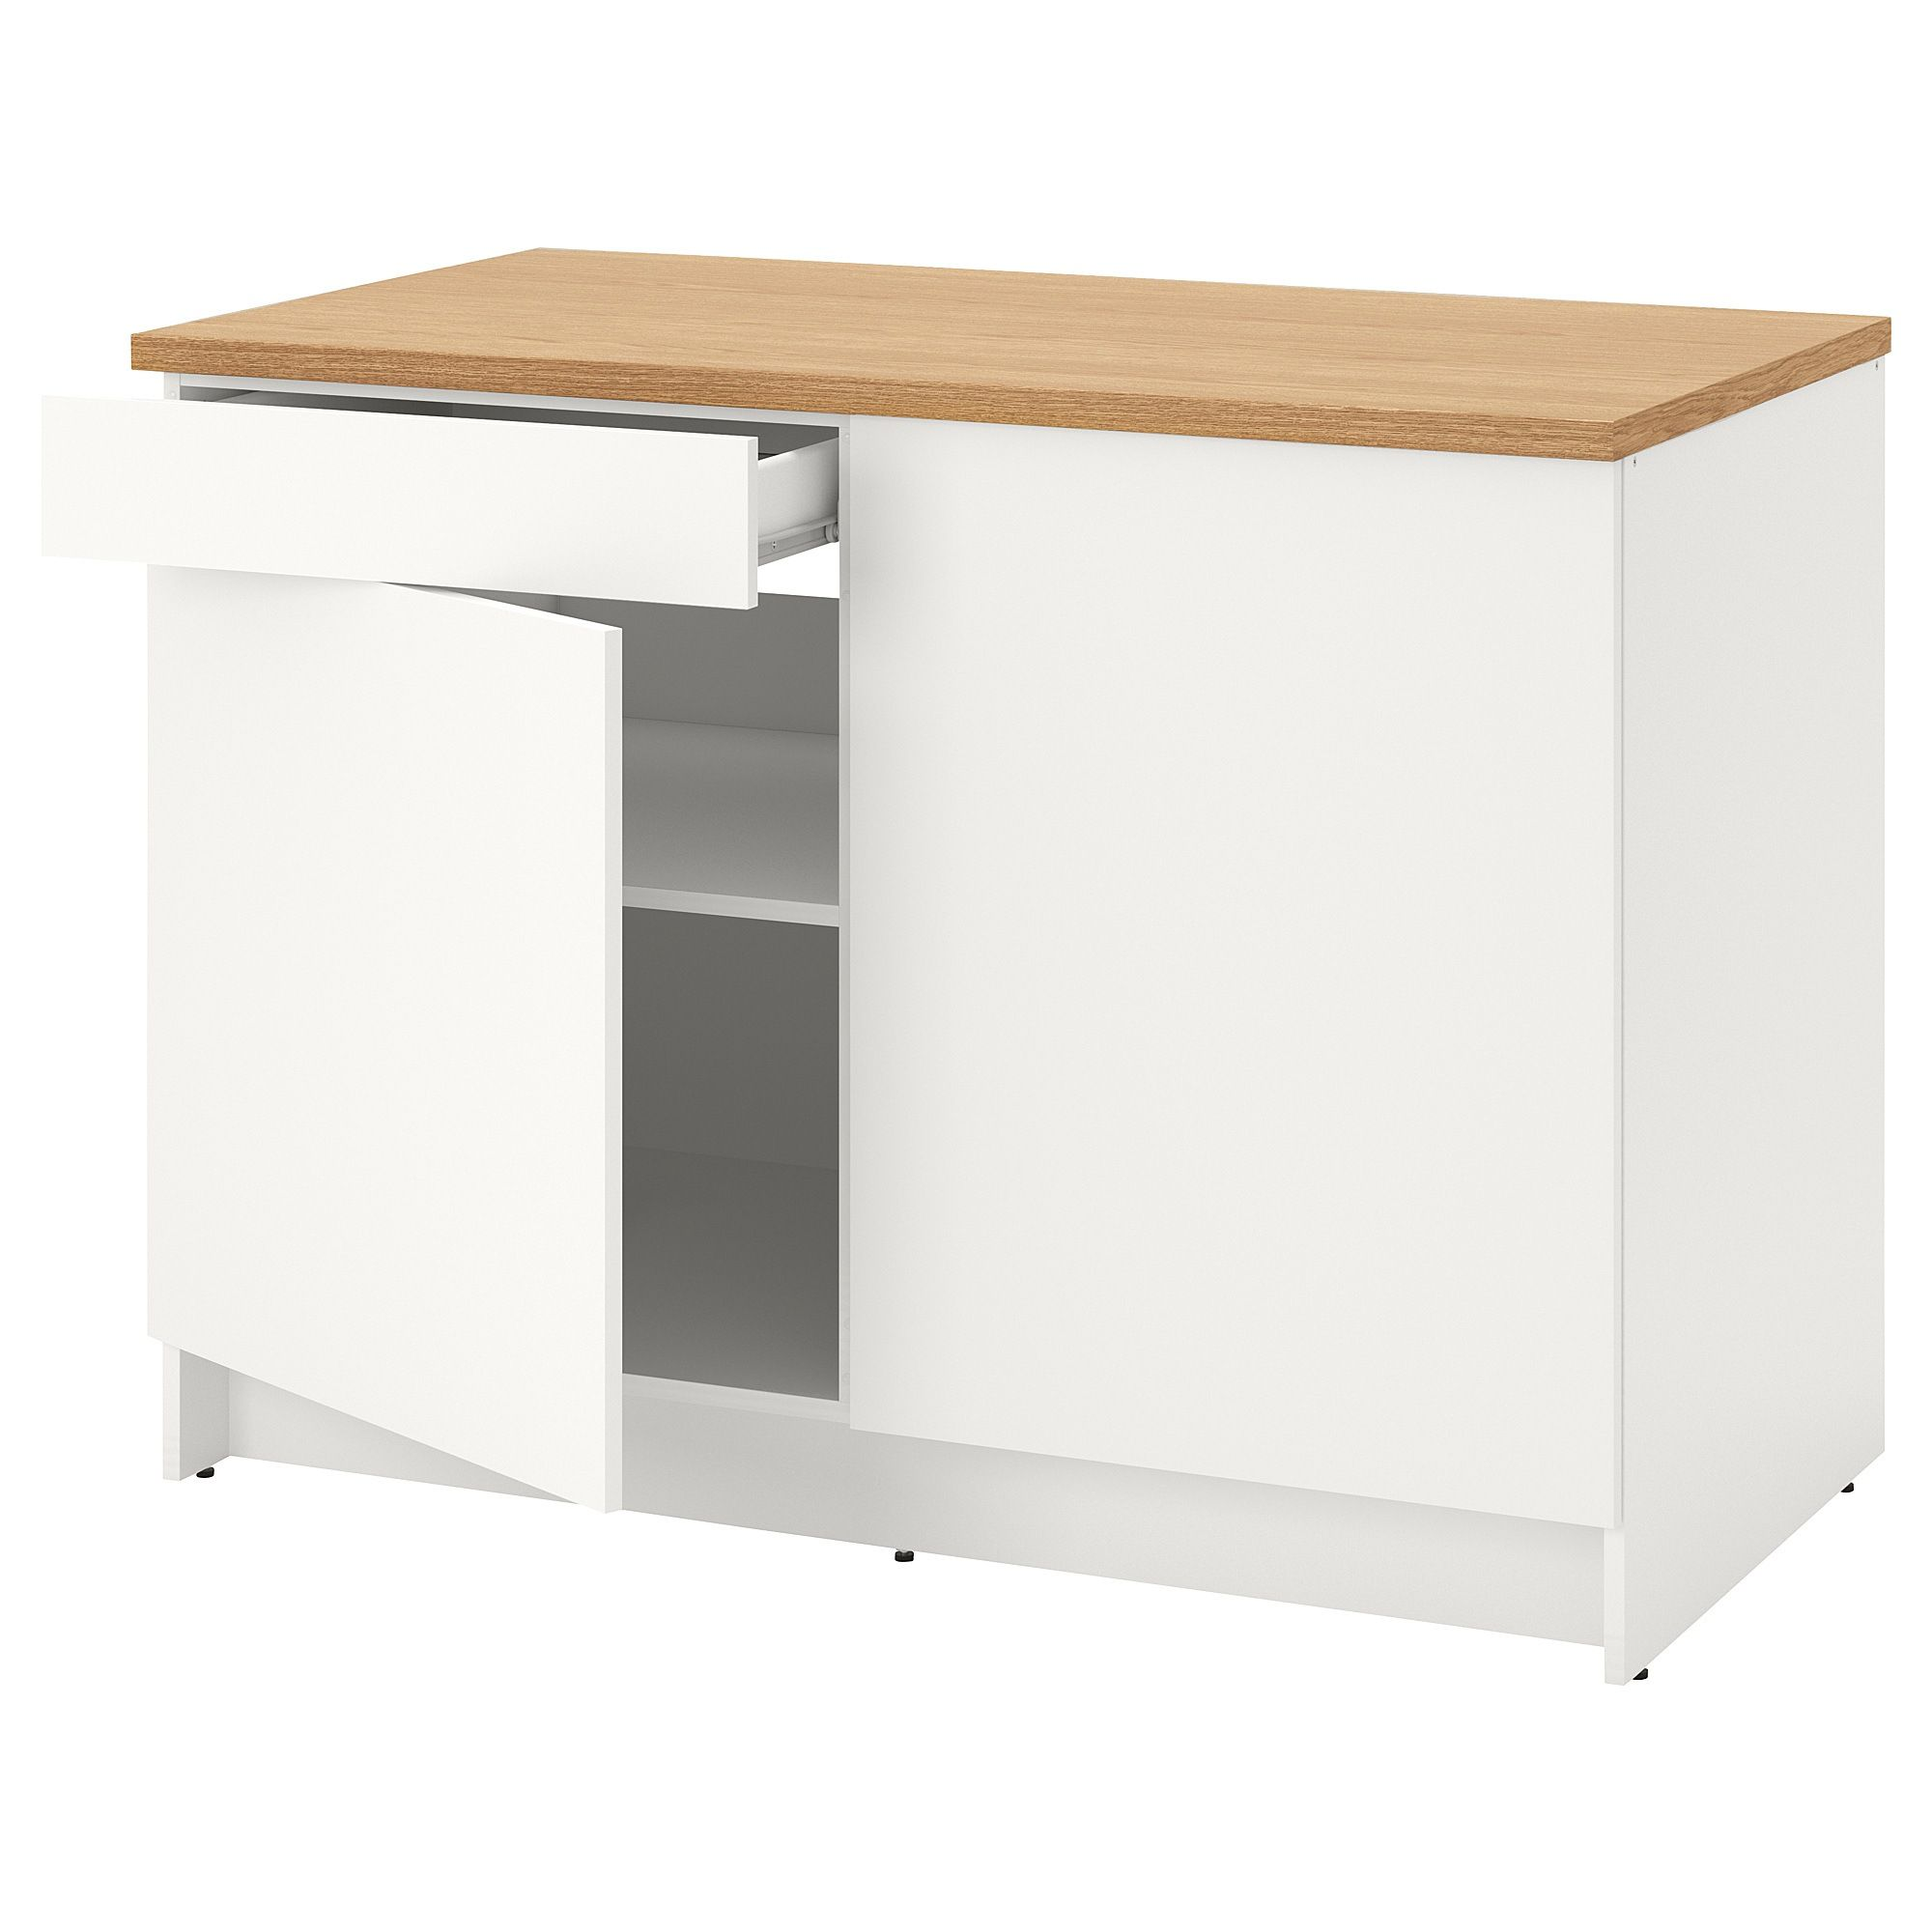 Ikea Knoxhult White Base Cabinet With Doors And Drawer Base Cabinets Cabinet Doors Kitchen Modular